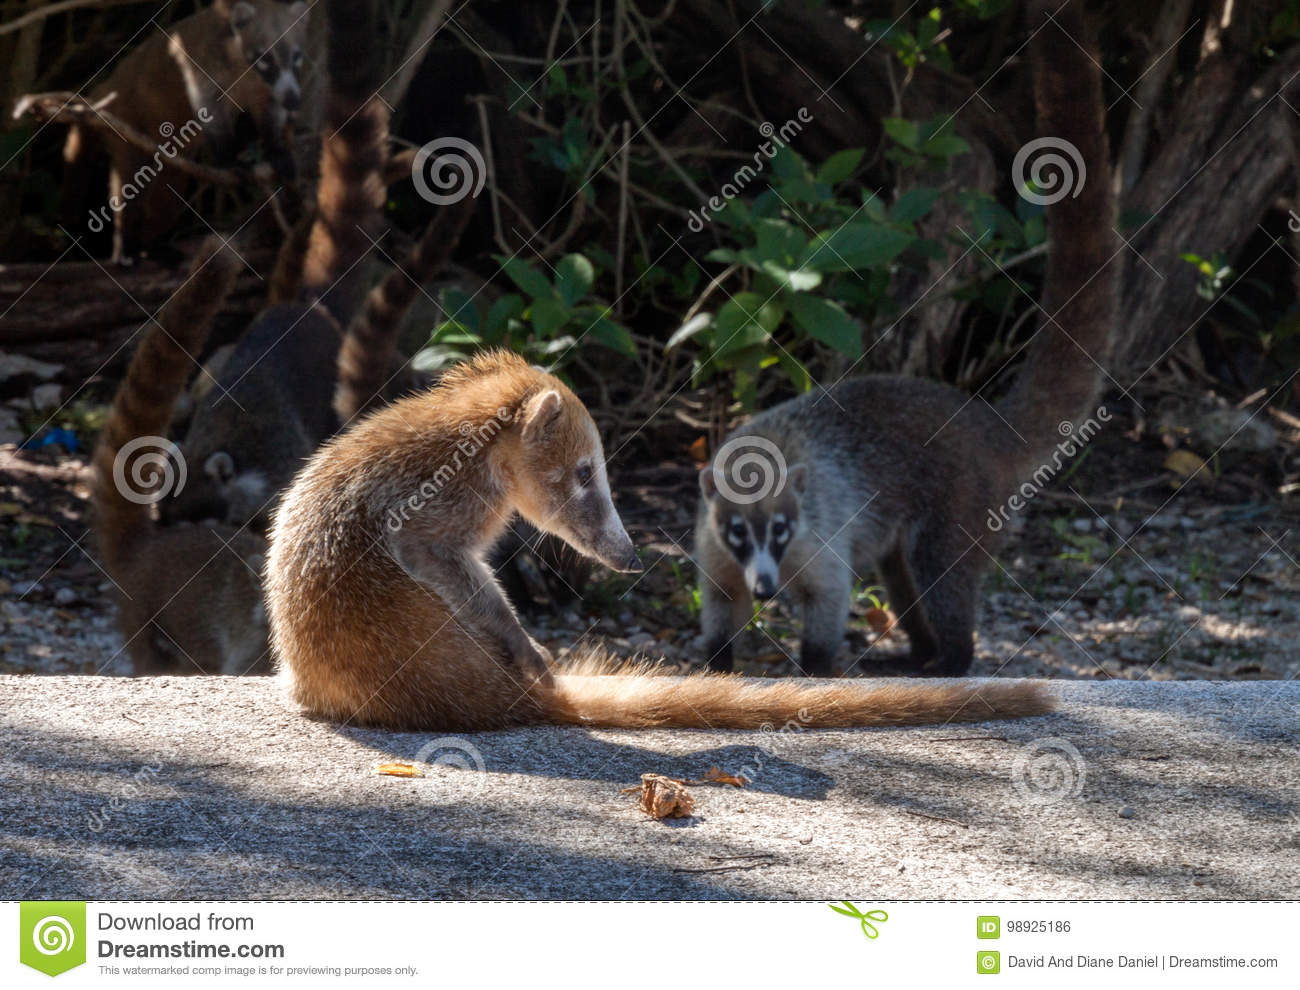 Coatimundi in the Tropics